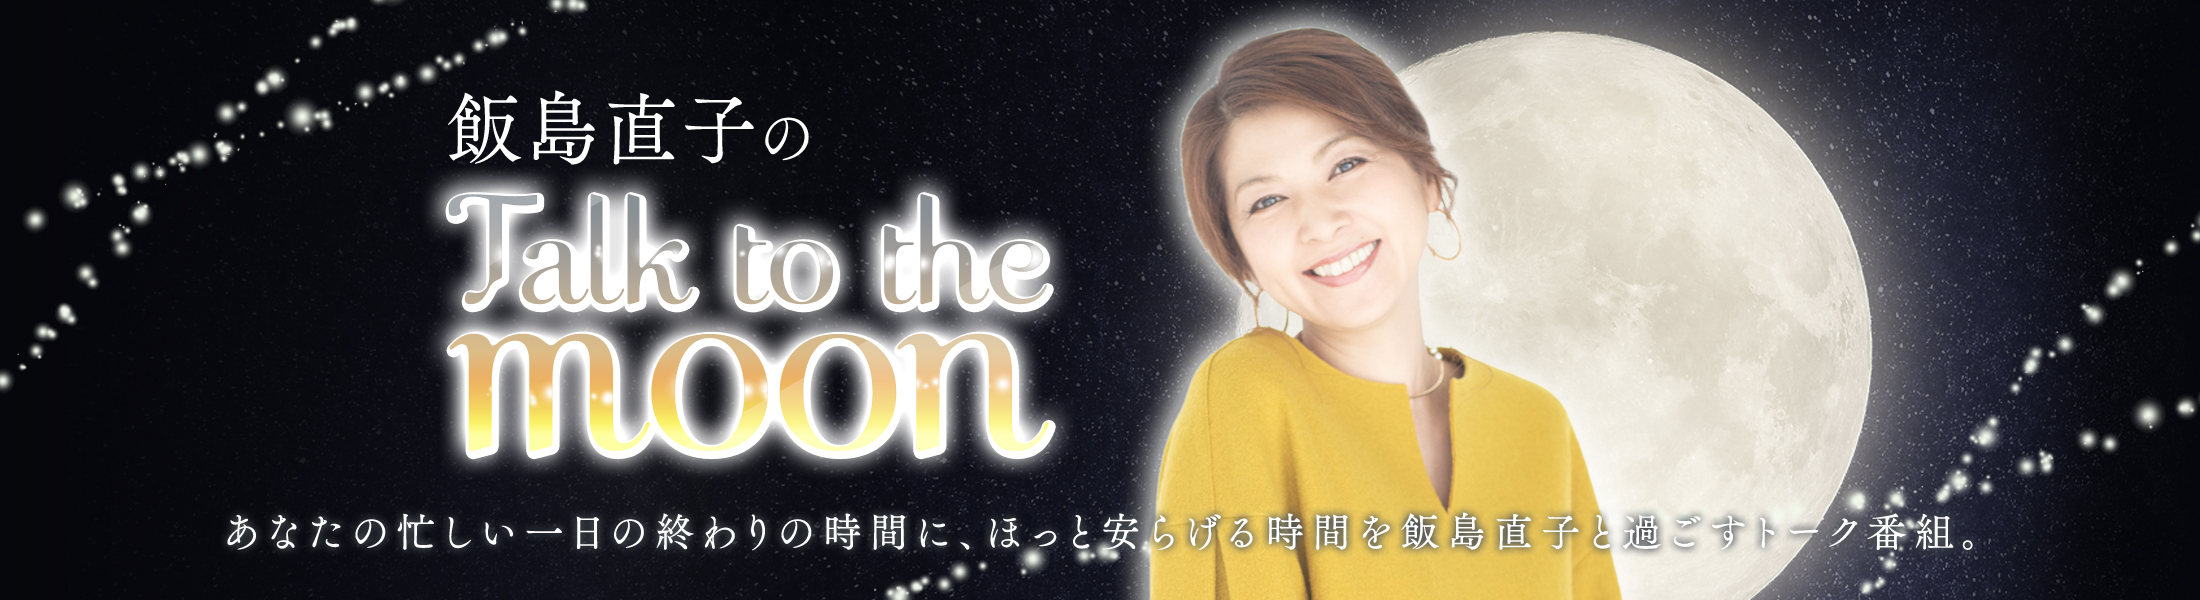 飯島直子のTalk to the moon